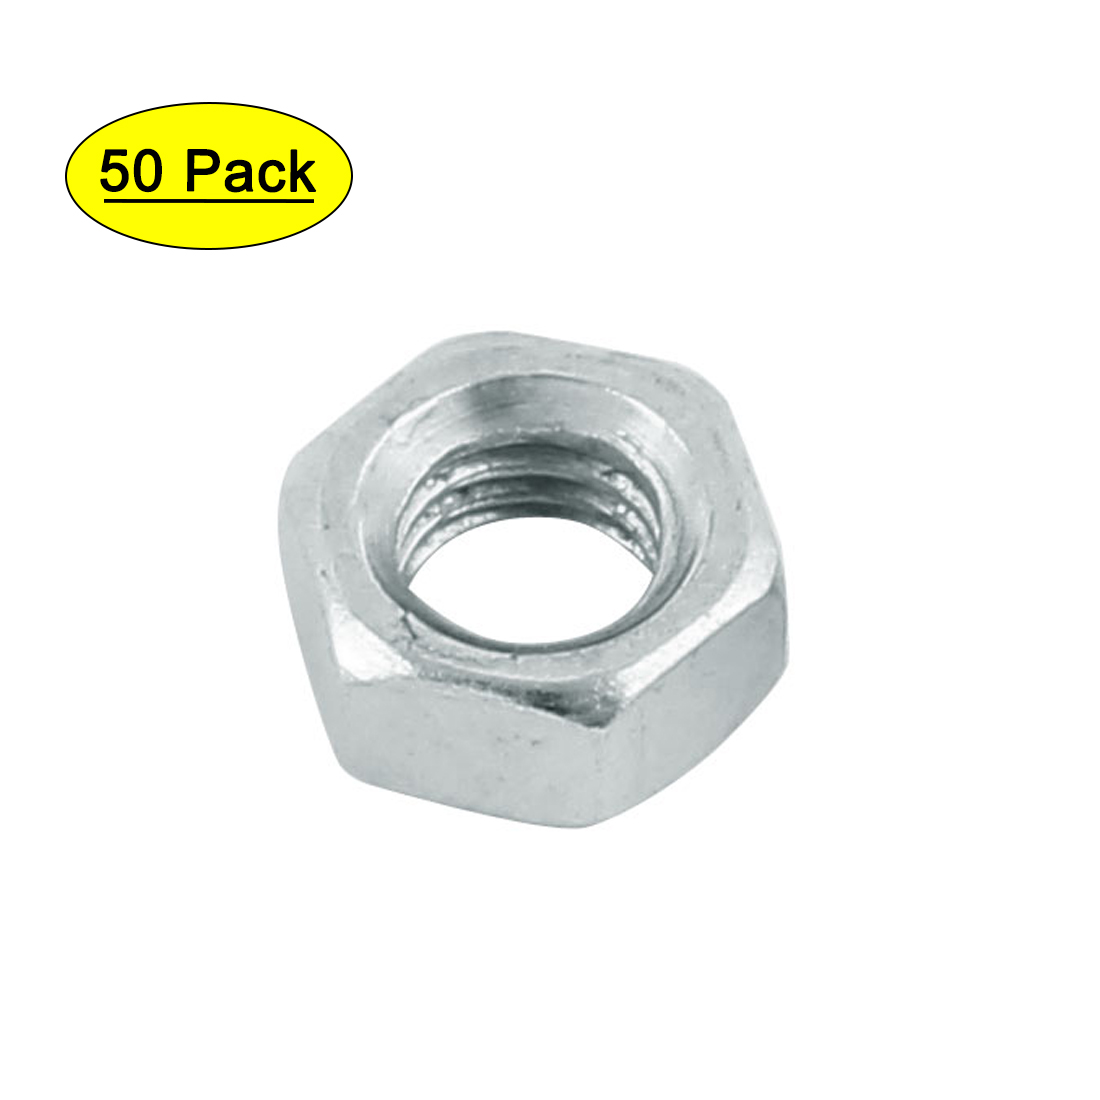 10#-32 Fine Thread Hexagon Nut Pack of 50 uxcell Hex Nuts Stainless Steel 304